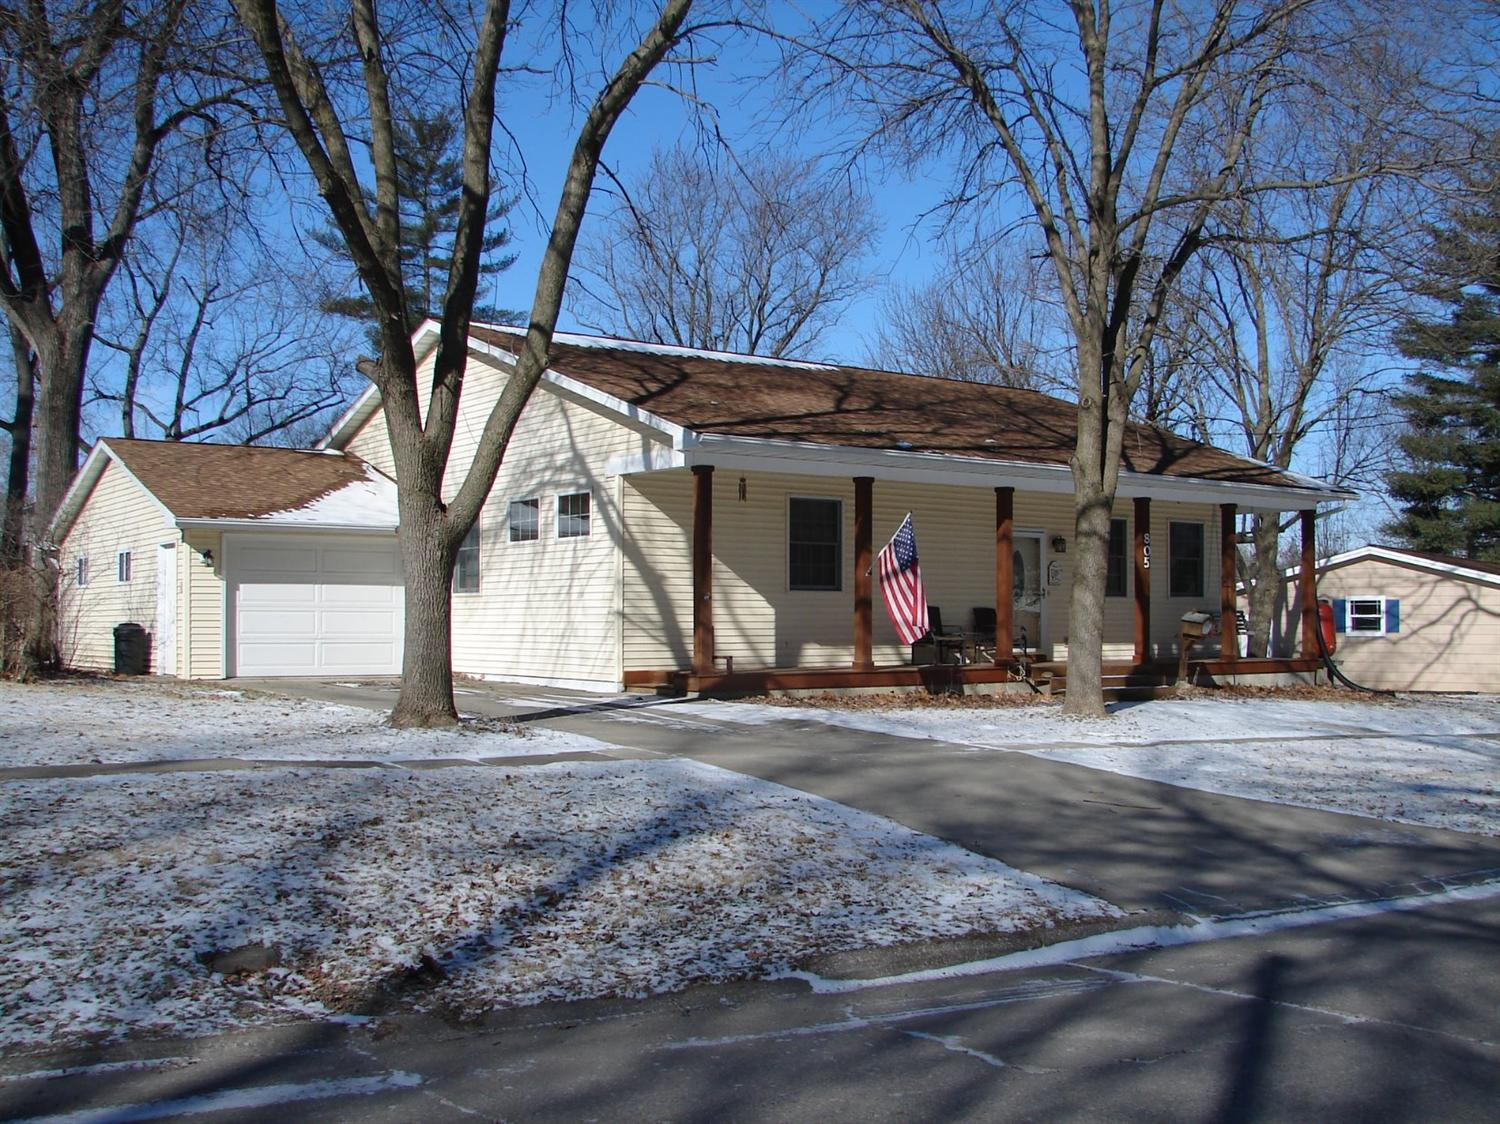 805 N Main St, Mount Pleasant, IA 52641